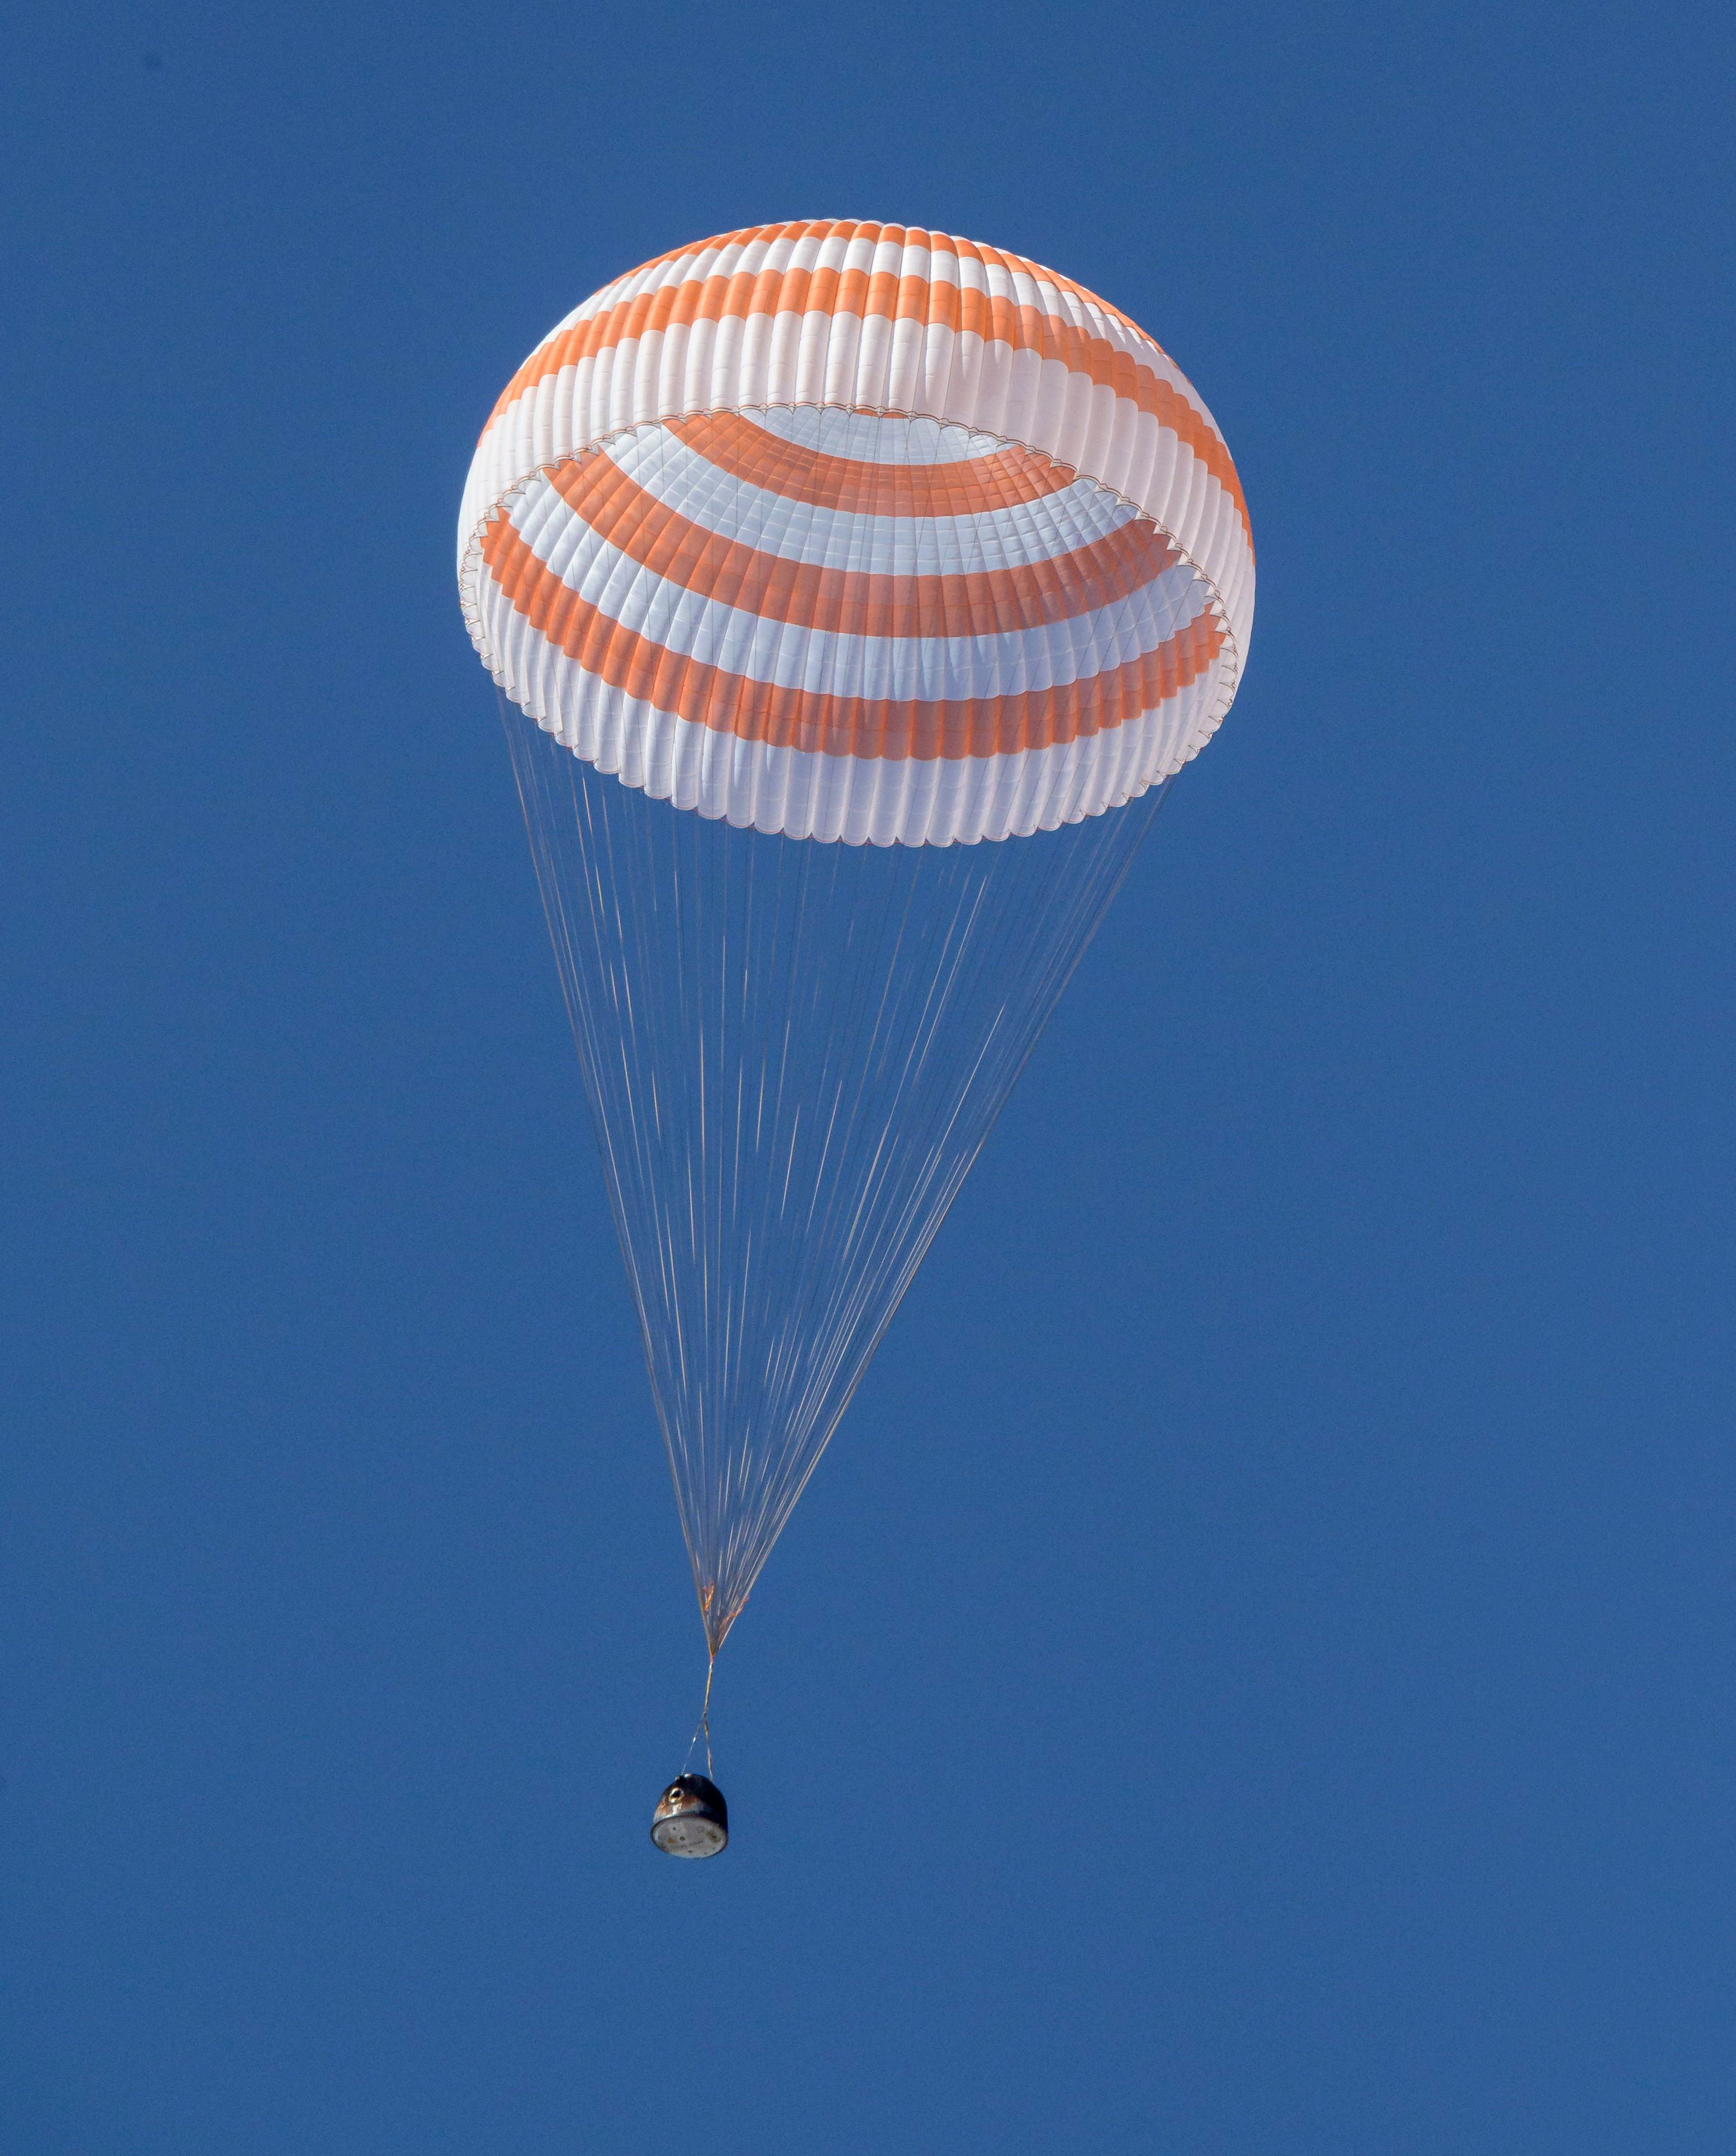 The Soyuz MS-17 spacecraft lands in a remote area near the town of Zhezkazgan, Kazakhstan, Saturday, April 17, 2021.